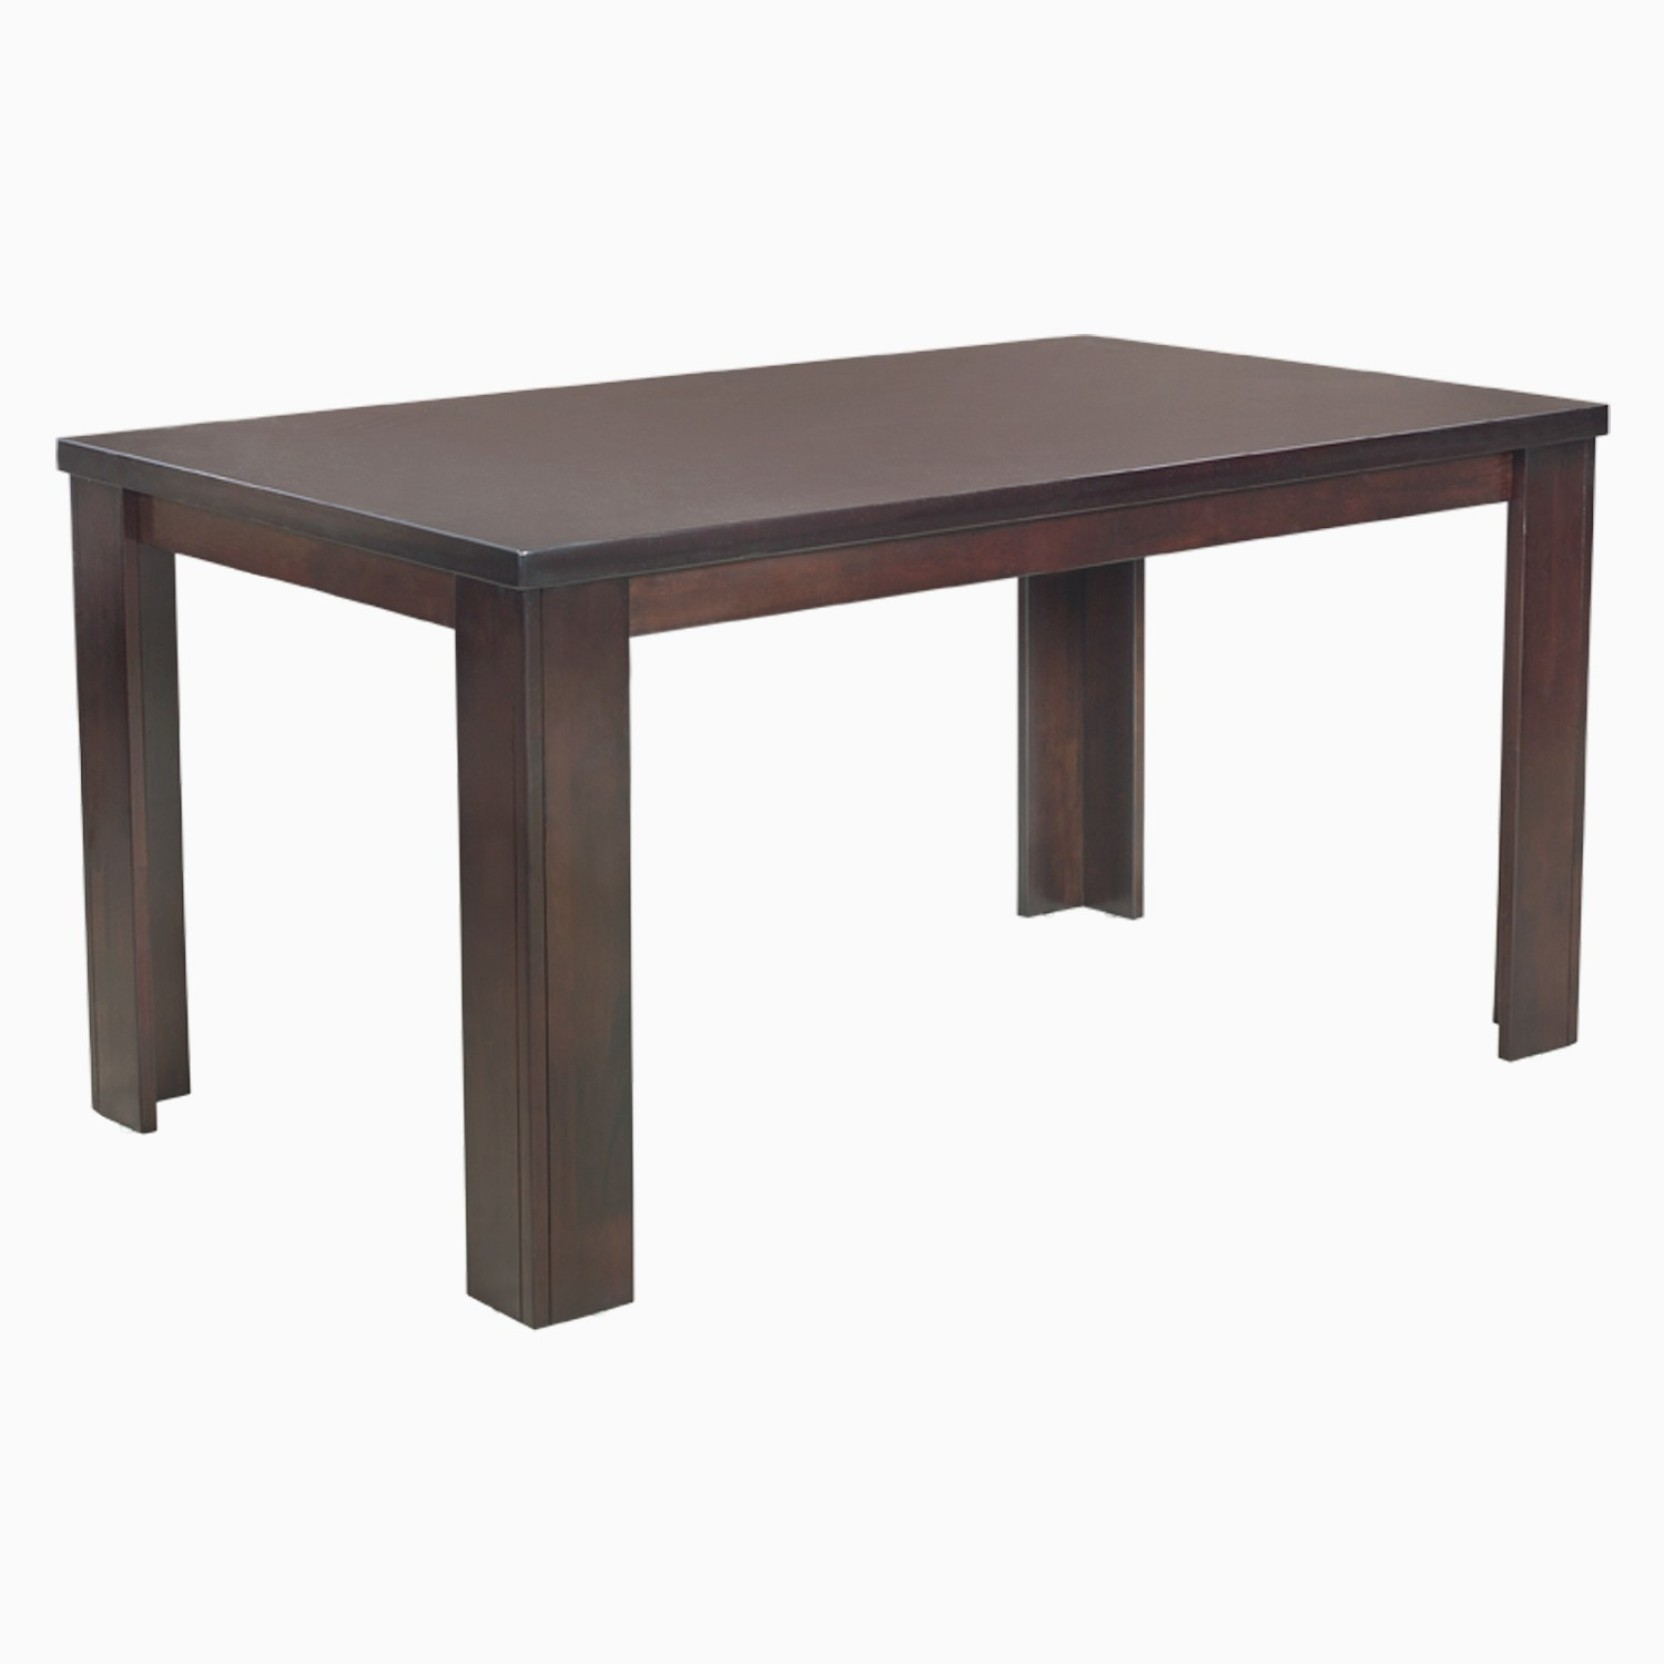 Dining Table Prices: Godrej Interio JACK DINING TABLE BROWN BLACK Engineered